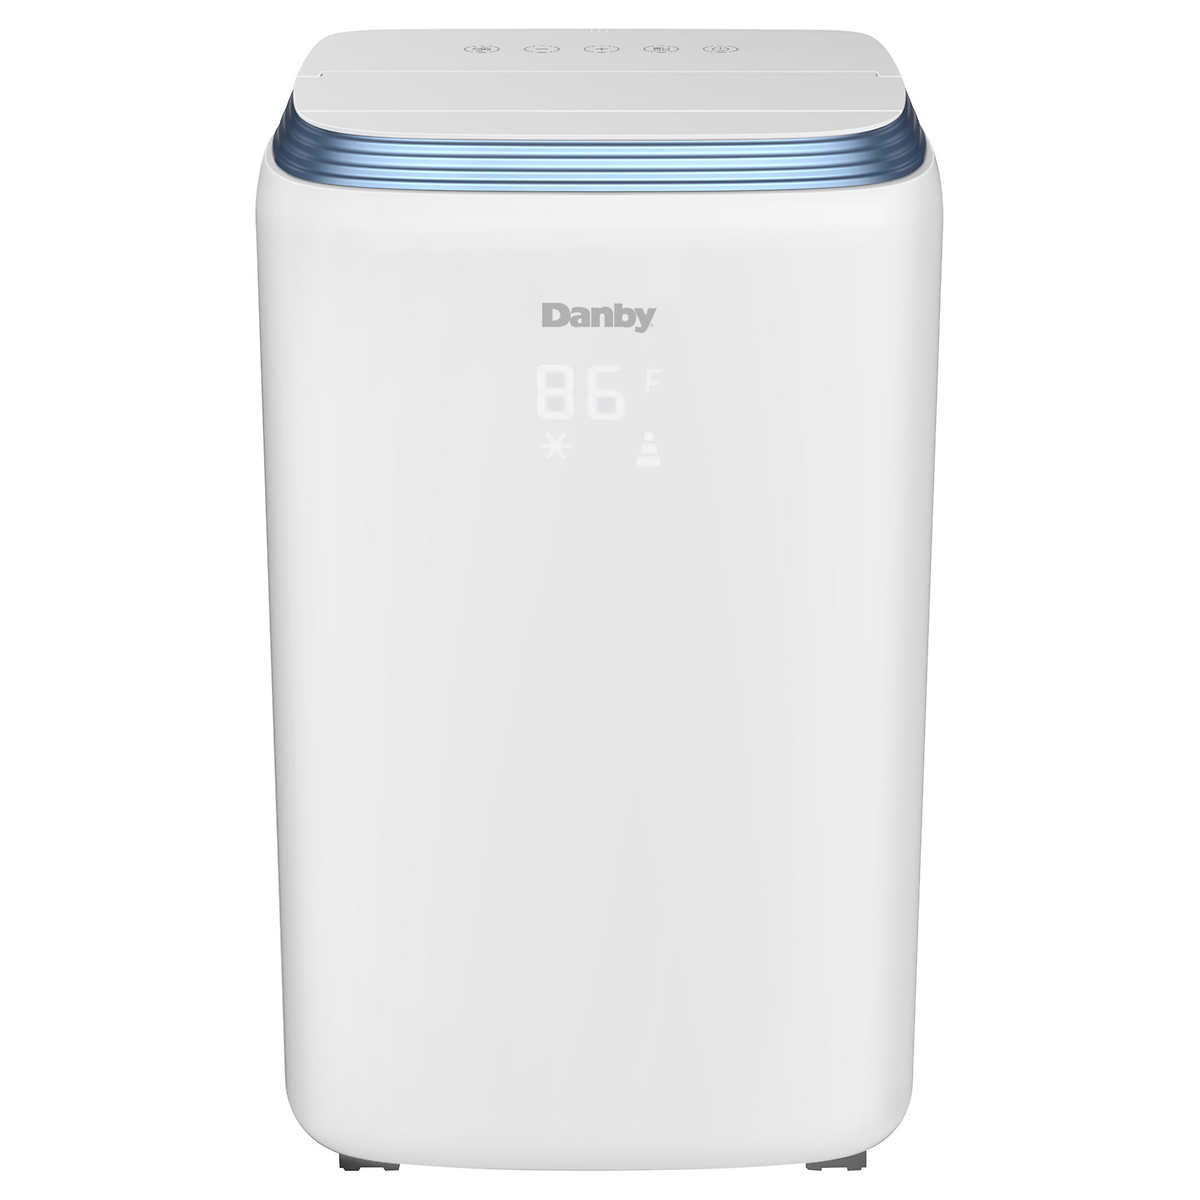 Danby 14,000 BTU 4-in-1 Portable Air Conditioner with Heater and